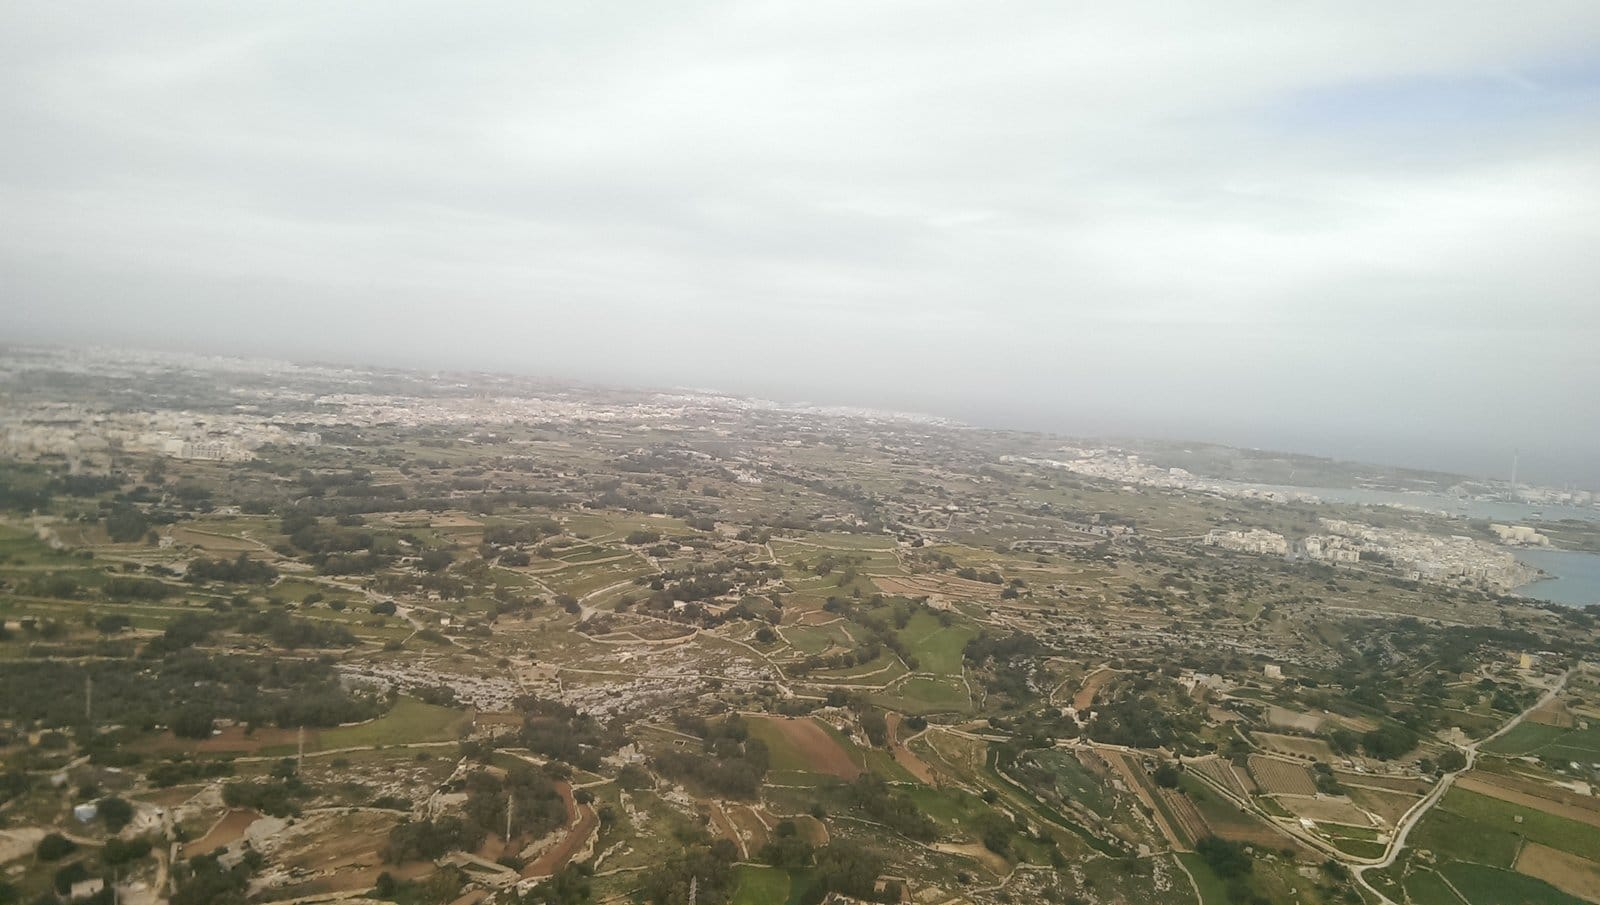 A winter break to Qawra, Malta